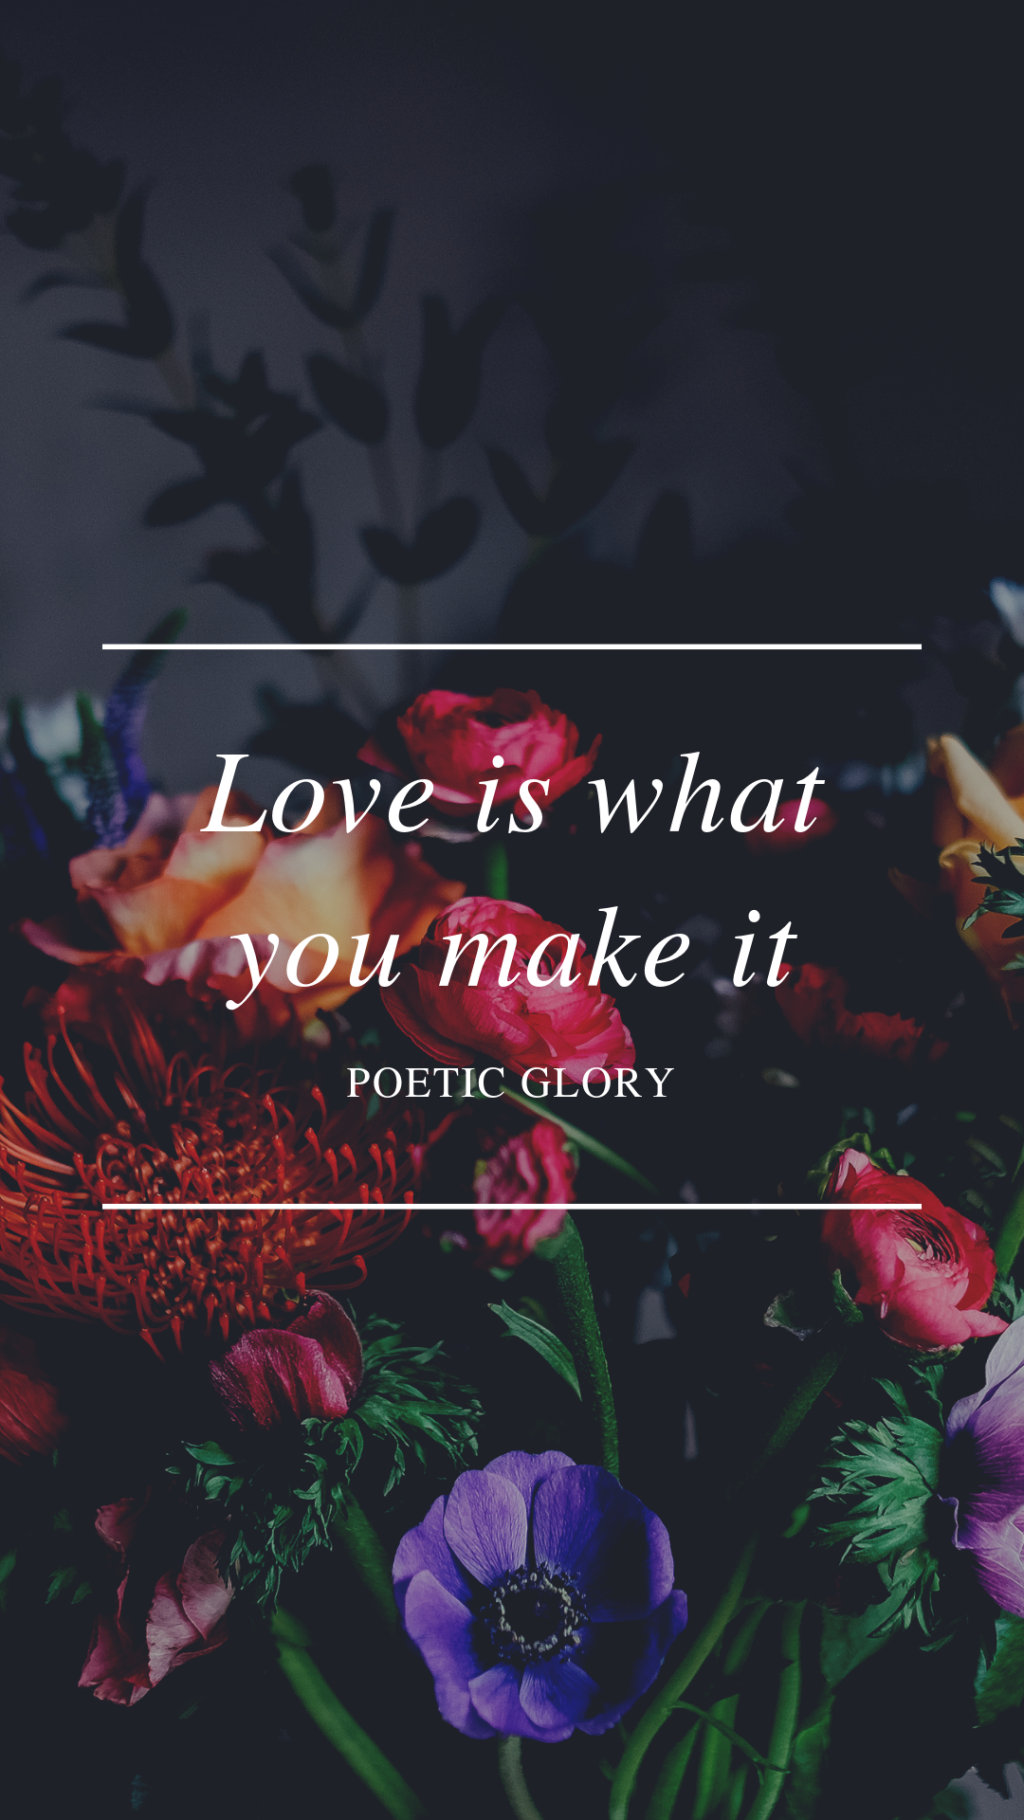 Love is what you make it (1).png